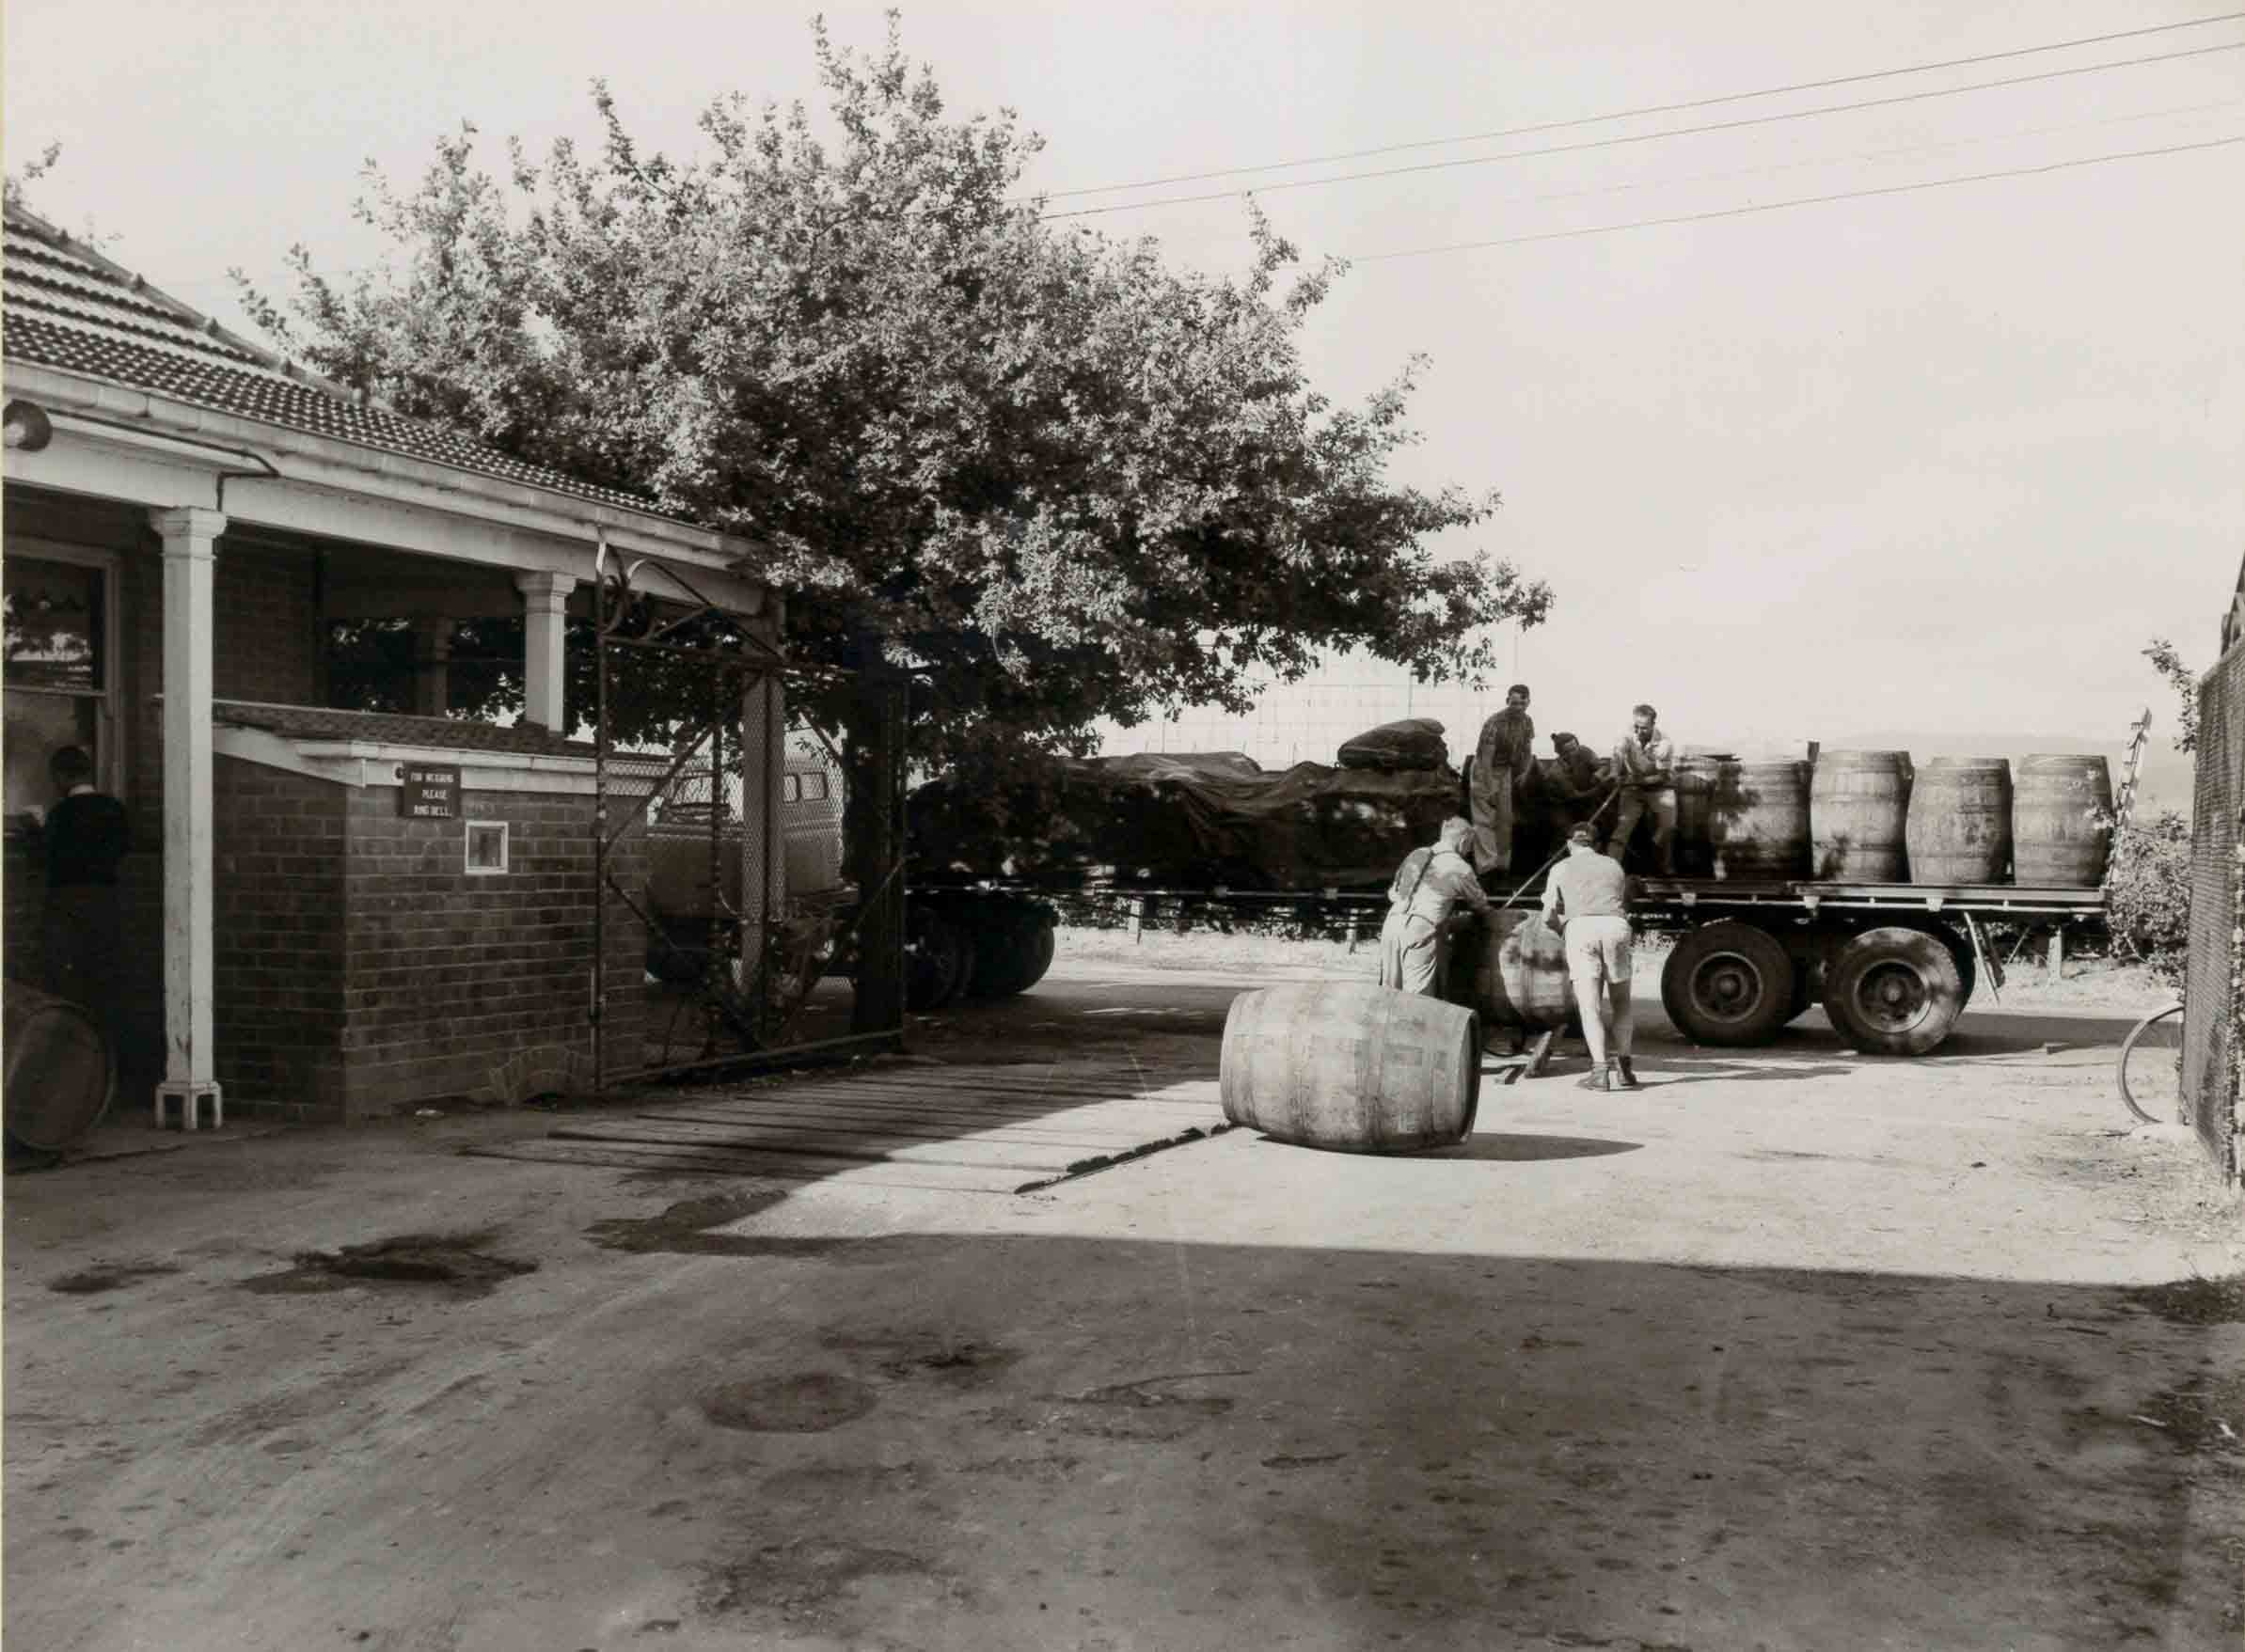 Loading Hogsheads at Hamiltons Ewell Winery 1950s